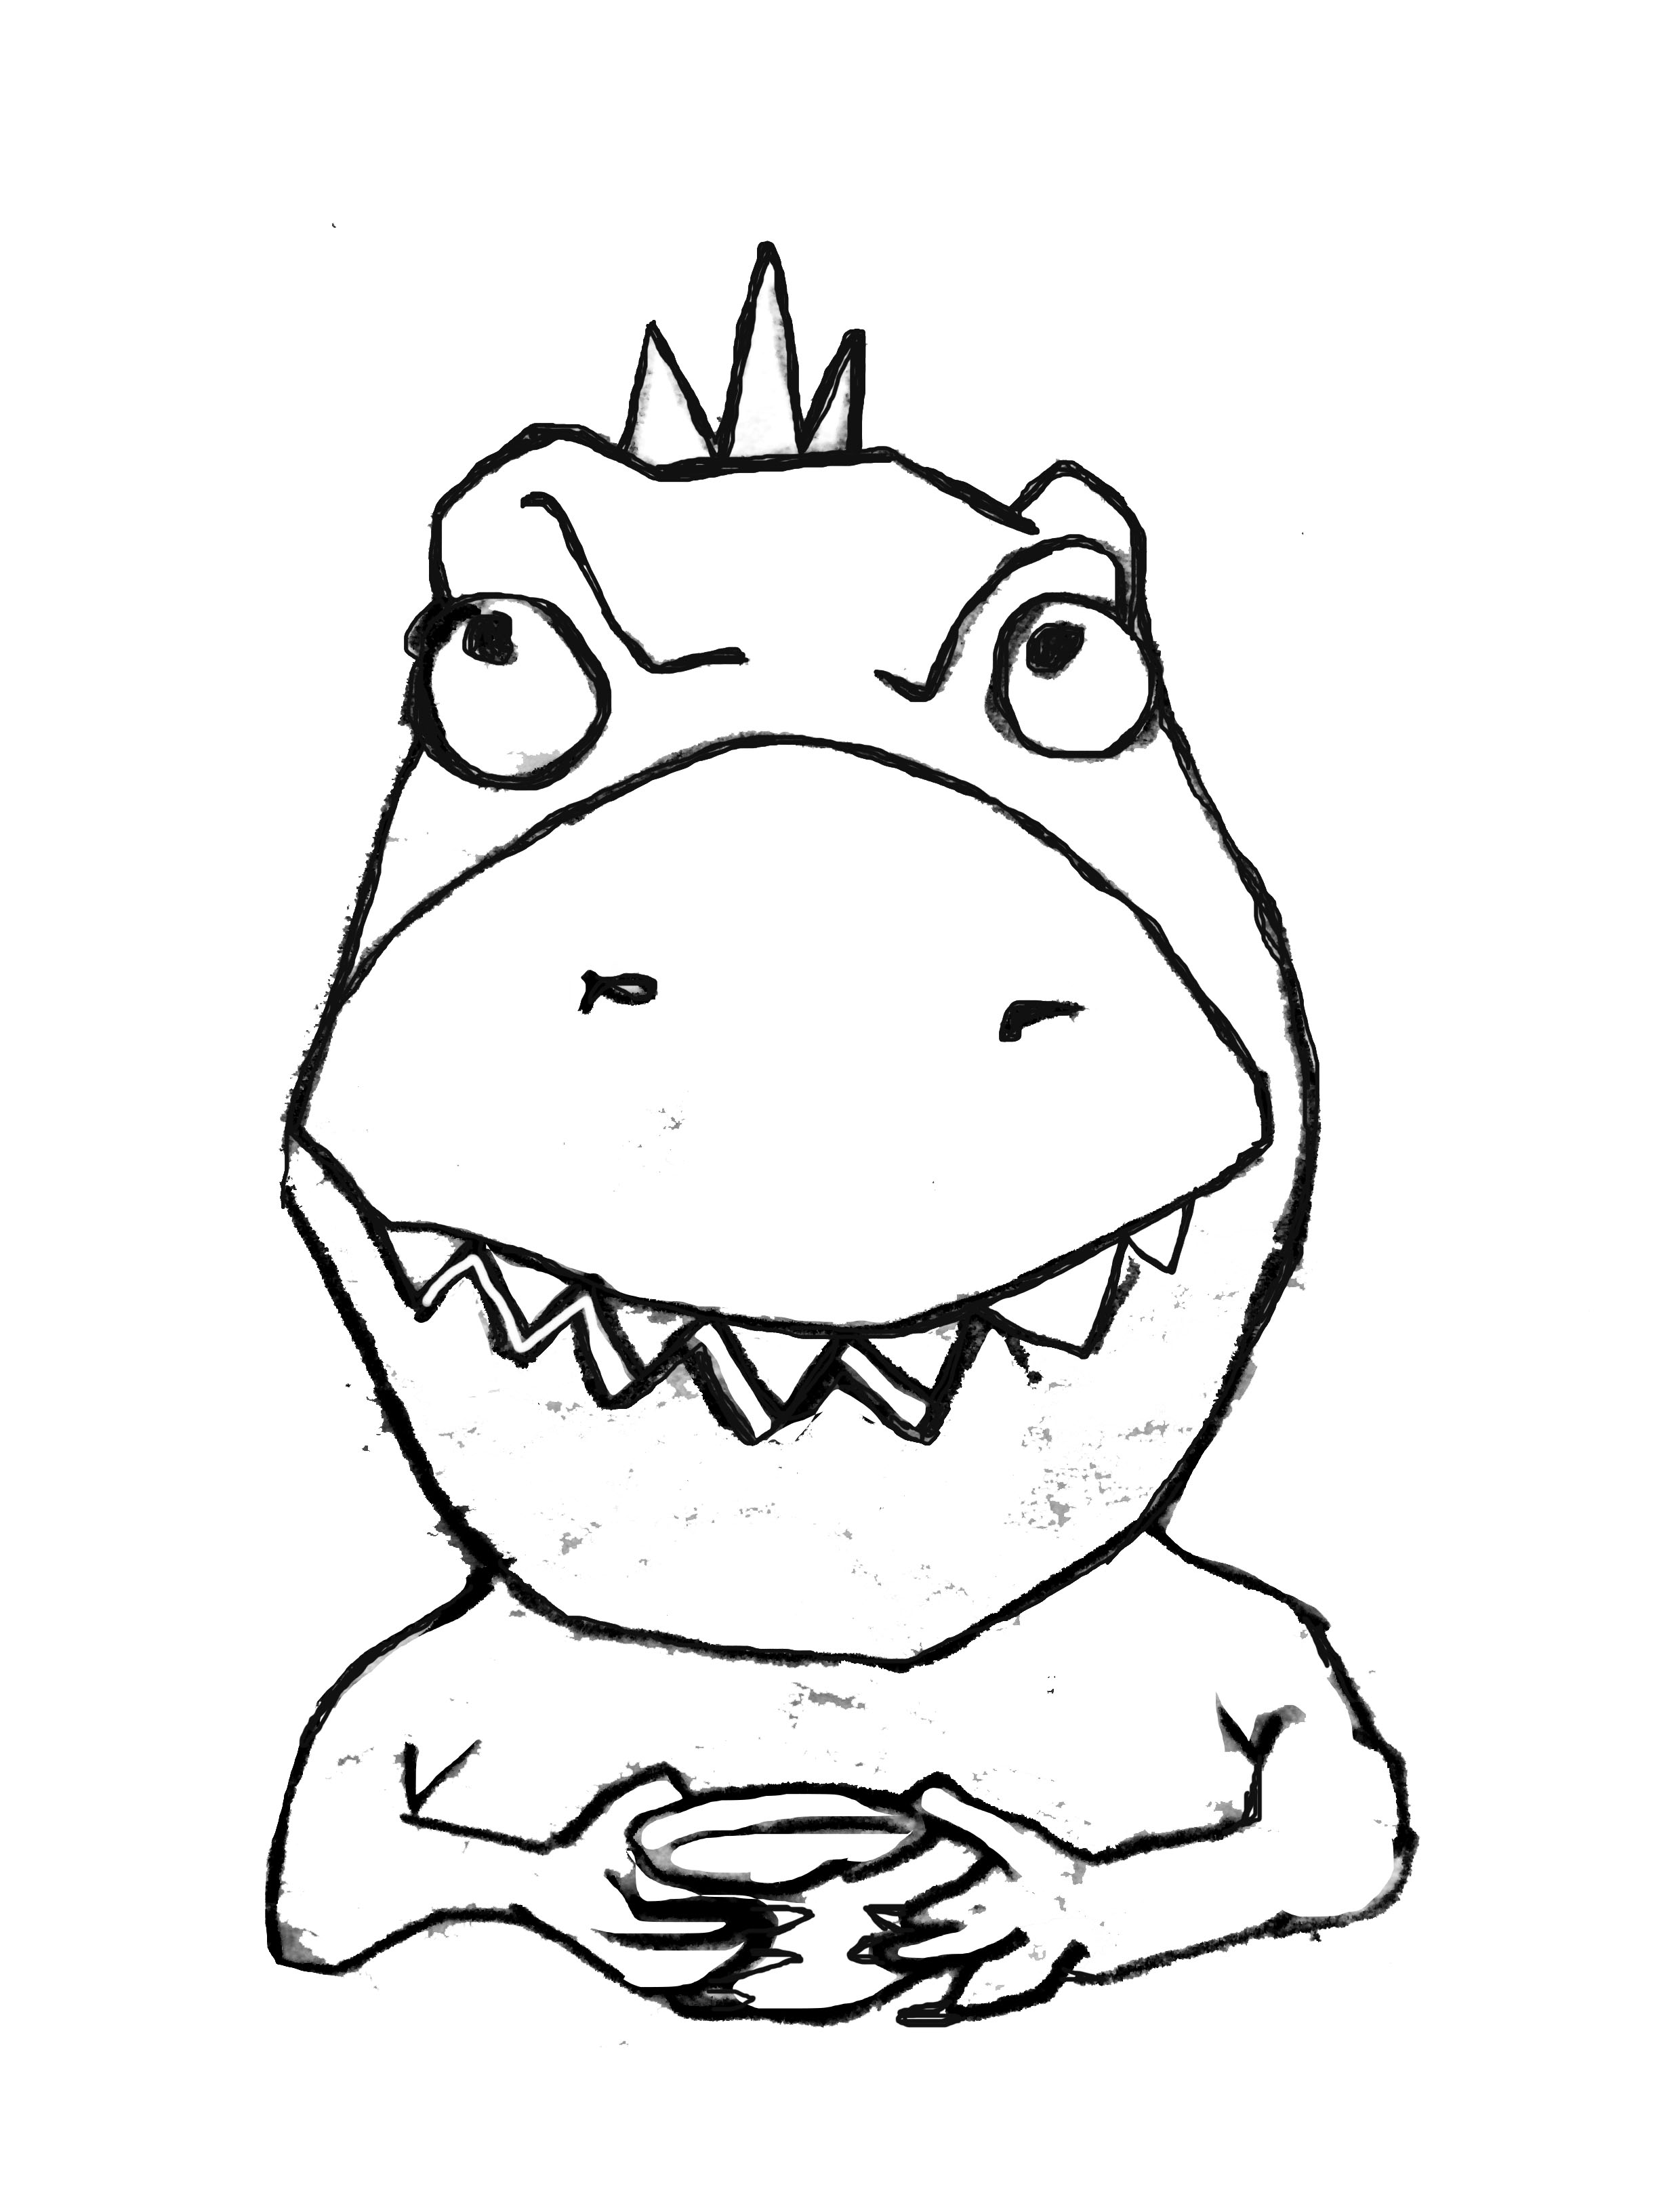 Tea Rex sketch